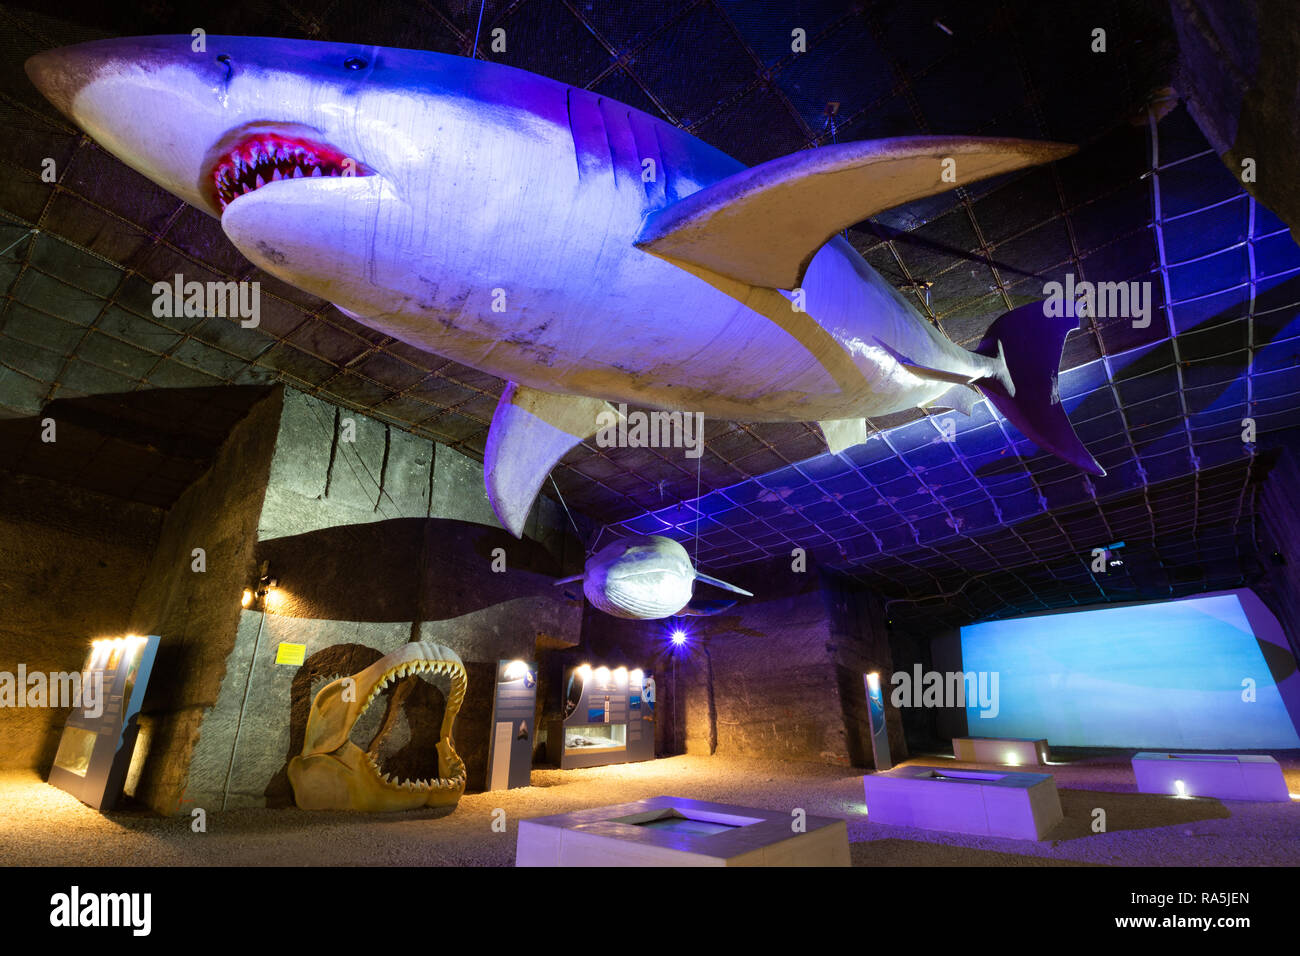 The so called `theme park` exhibition at the limestone quarry cave in Fertorakos, Hungary. A life-size Megalodon and Megalodon jaws. - Stock Image